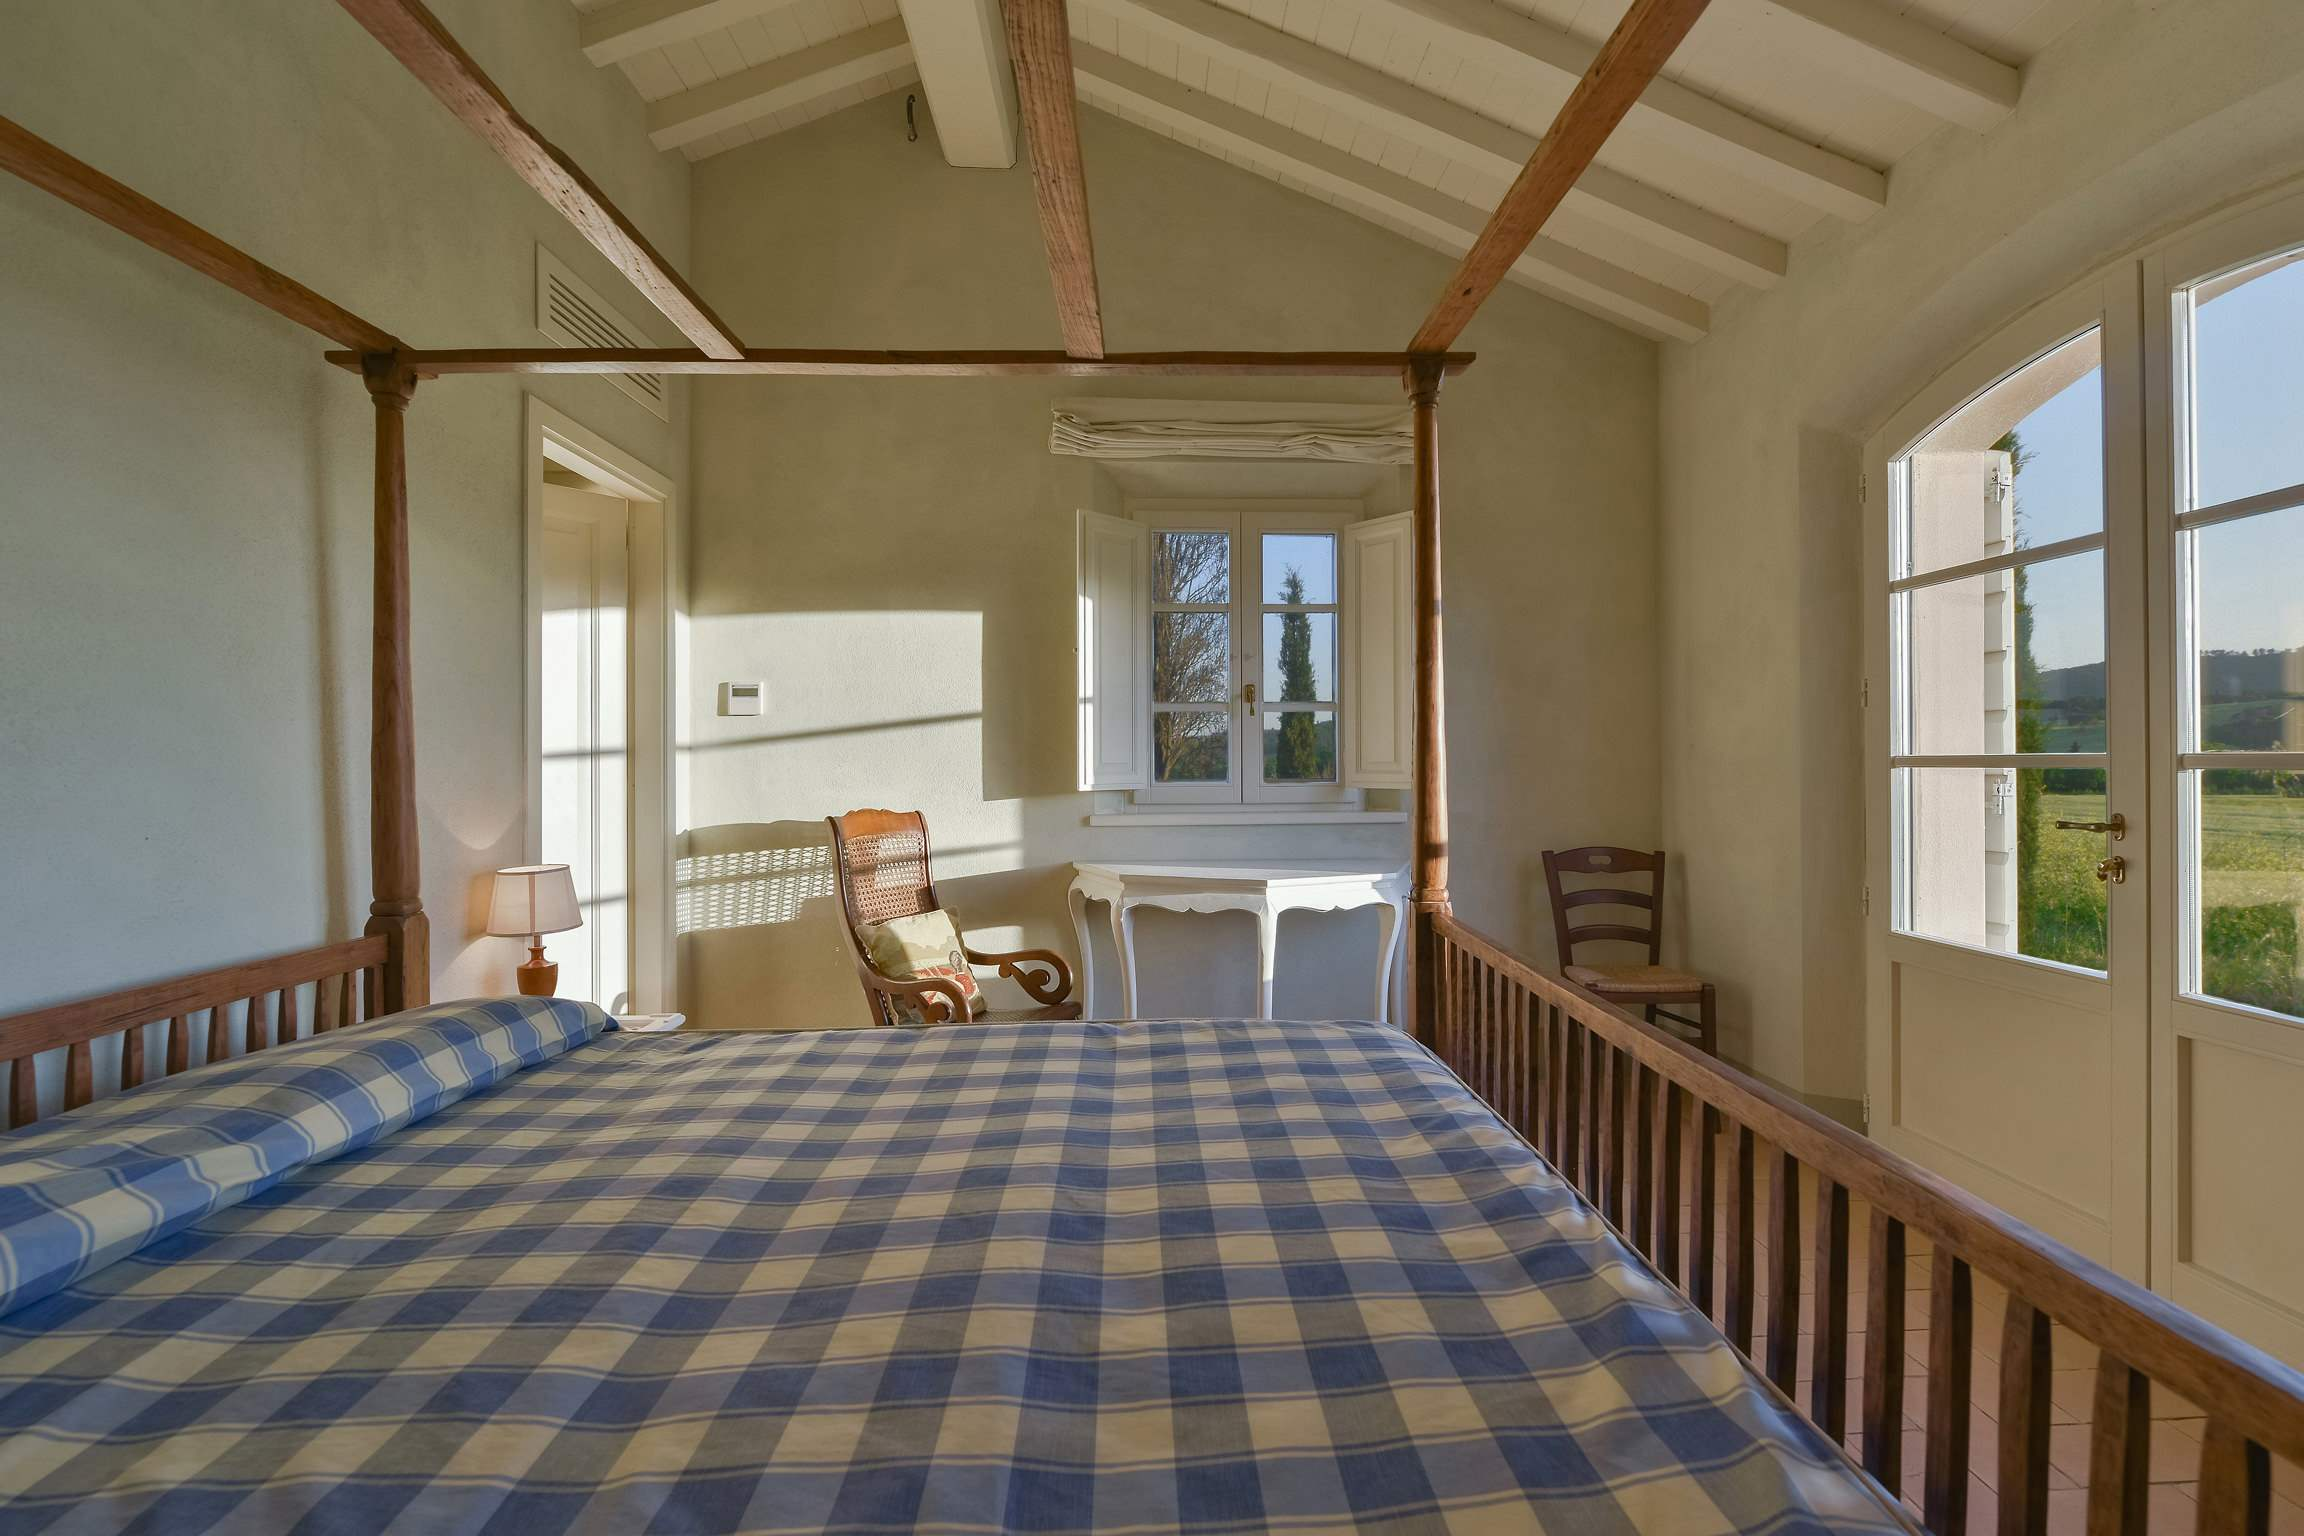 Villa Maremma 1, 7 bedroom villa in South Tuscany - Maremma, Tuscany Photo #28